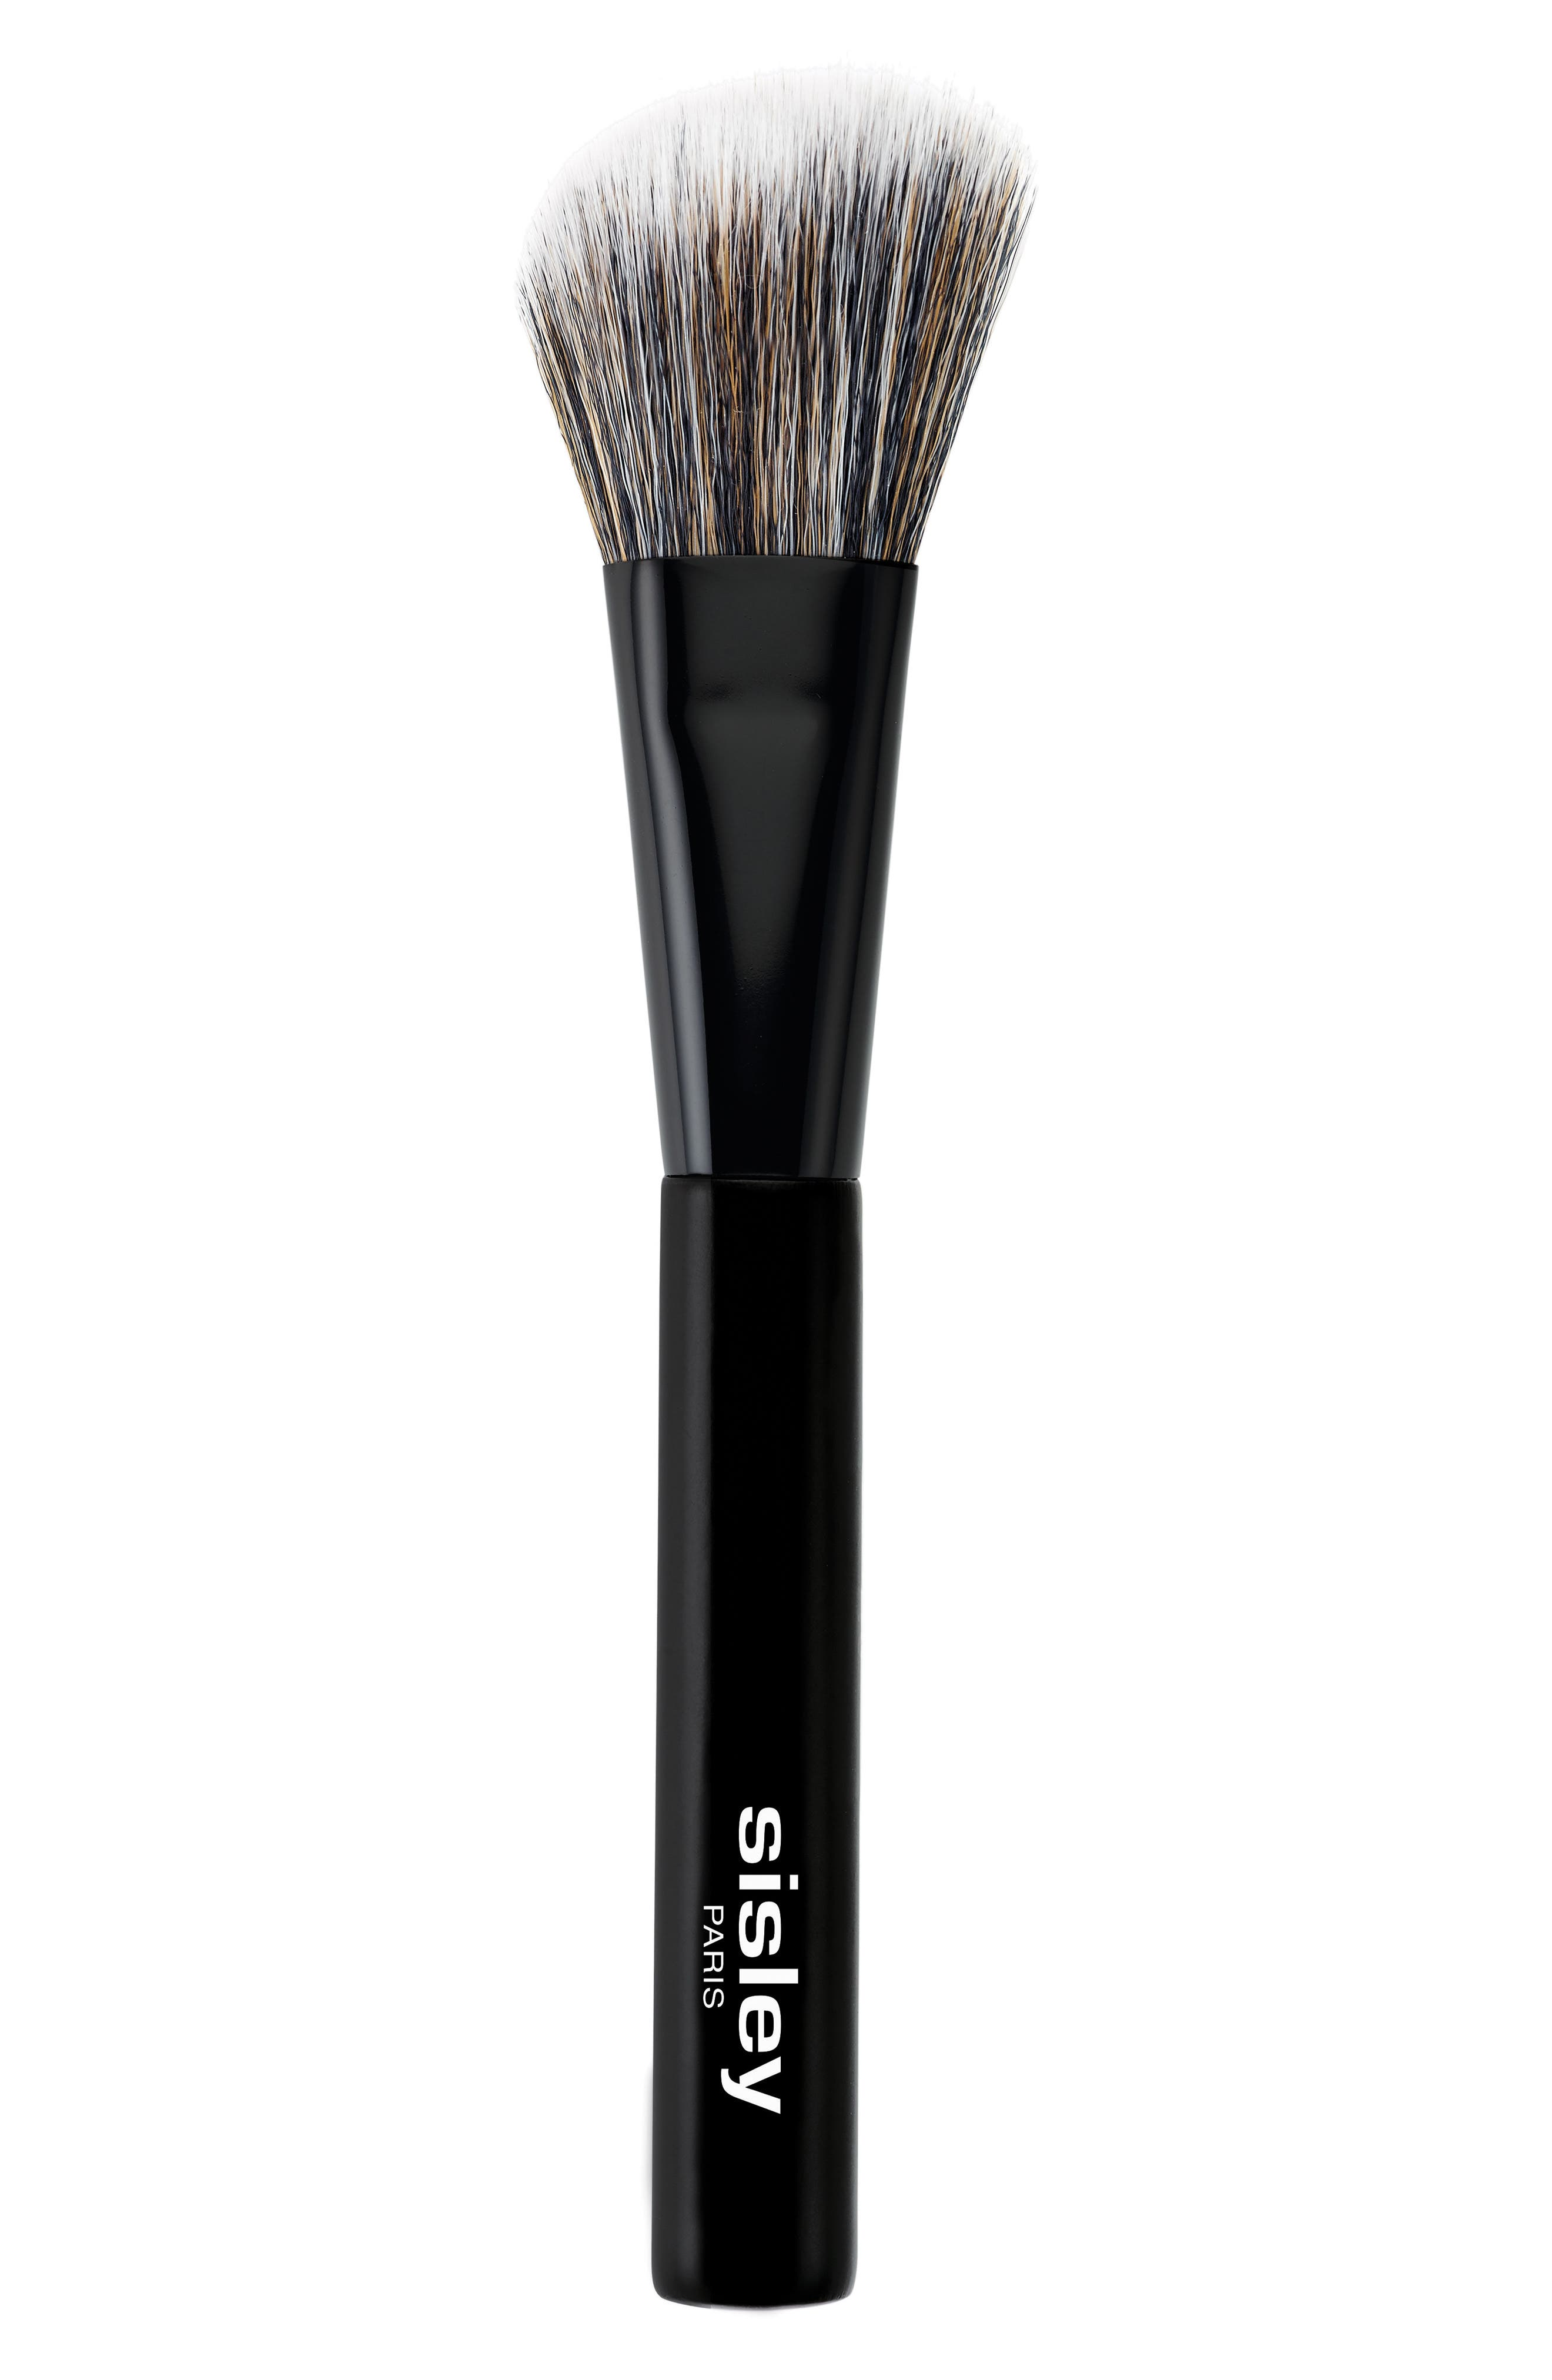 What it is: A synthetic-bristle brush with a tapered, rounded, flat head that provides a healthy glow effect to a more intense look. What it does: Ideal for use with powder blush, this brush is designed for easy, precise and fast application for lifted cheekbones and a sculpted face. How to use: Apply product directly from the compact. If necessary, tap to remove excess before delicately applying from the cheekbones up toward the temples. Reapply